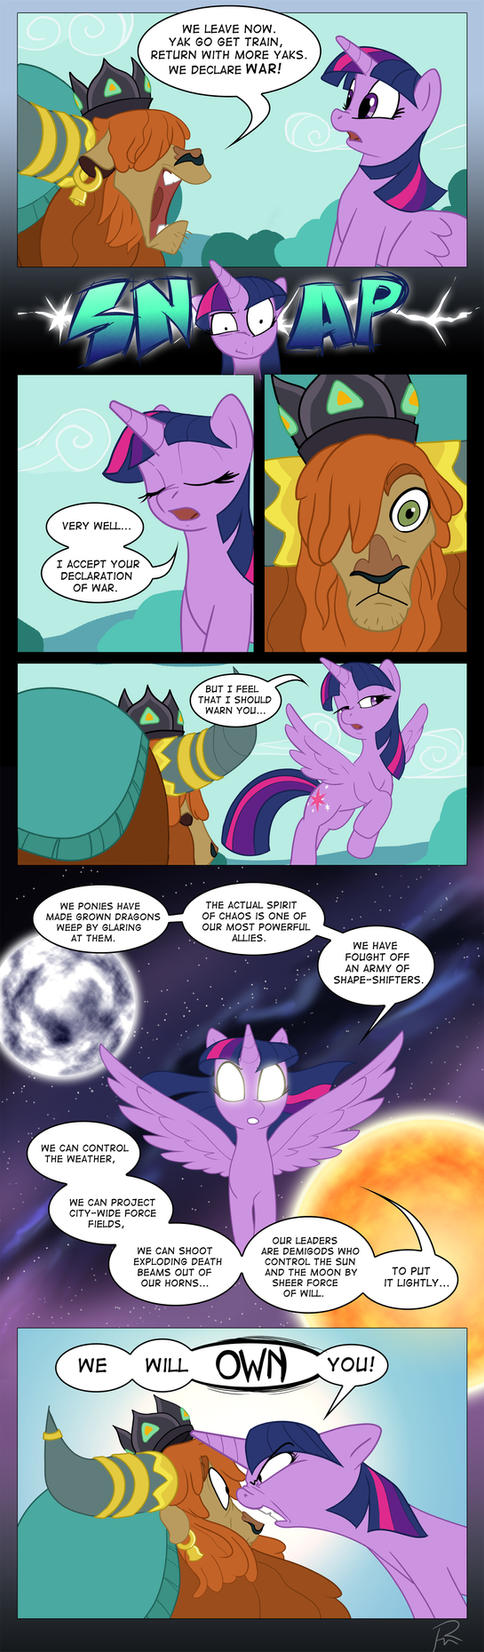 Anon Mlp Comic requisite pony thread (no creepers) images | page 62